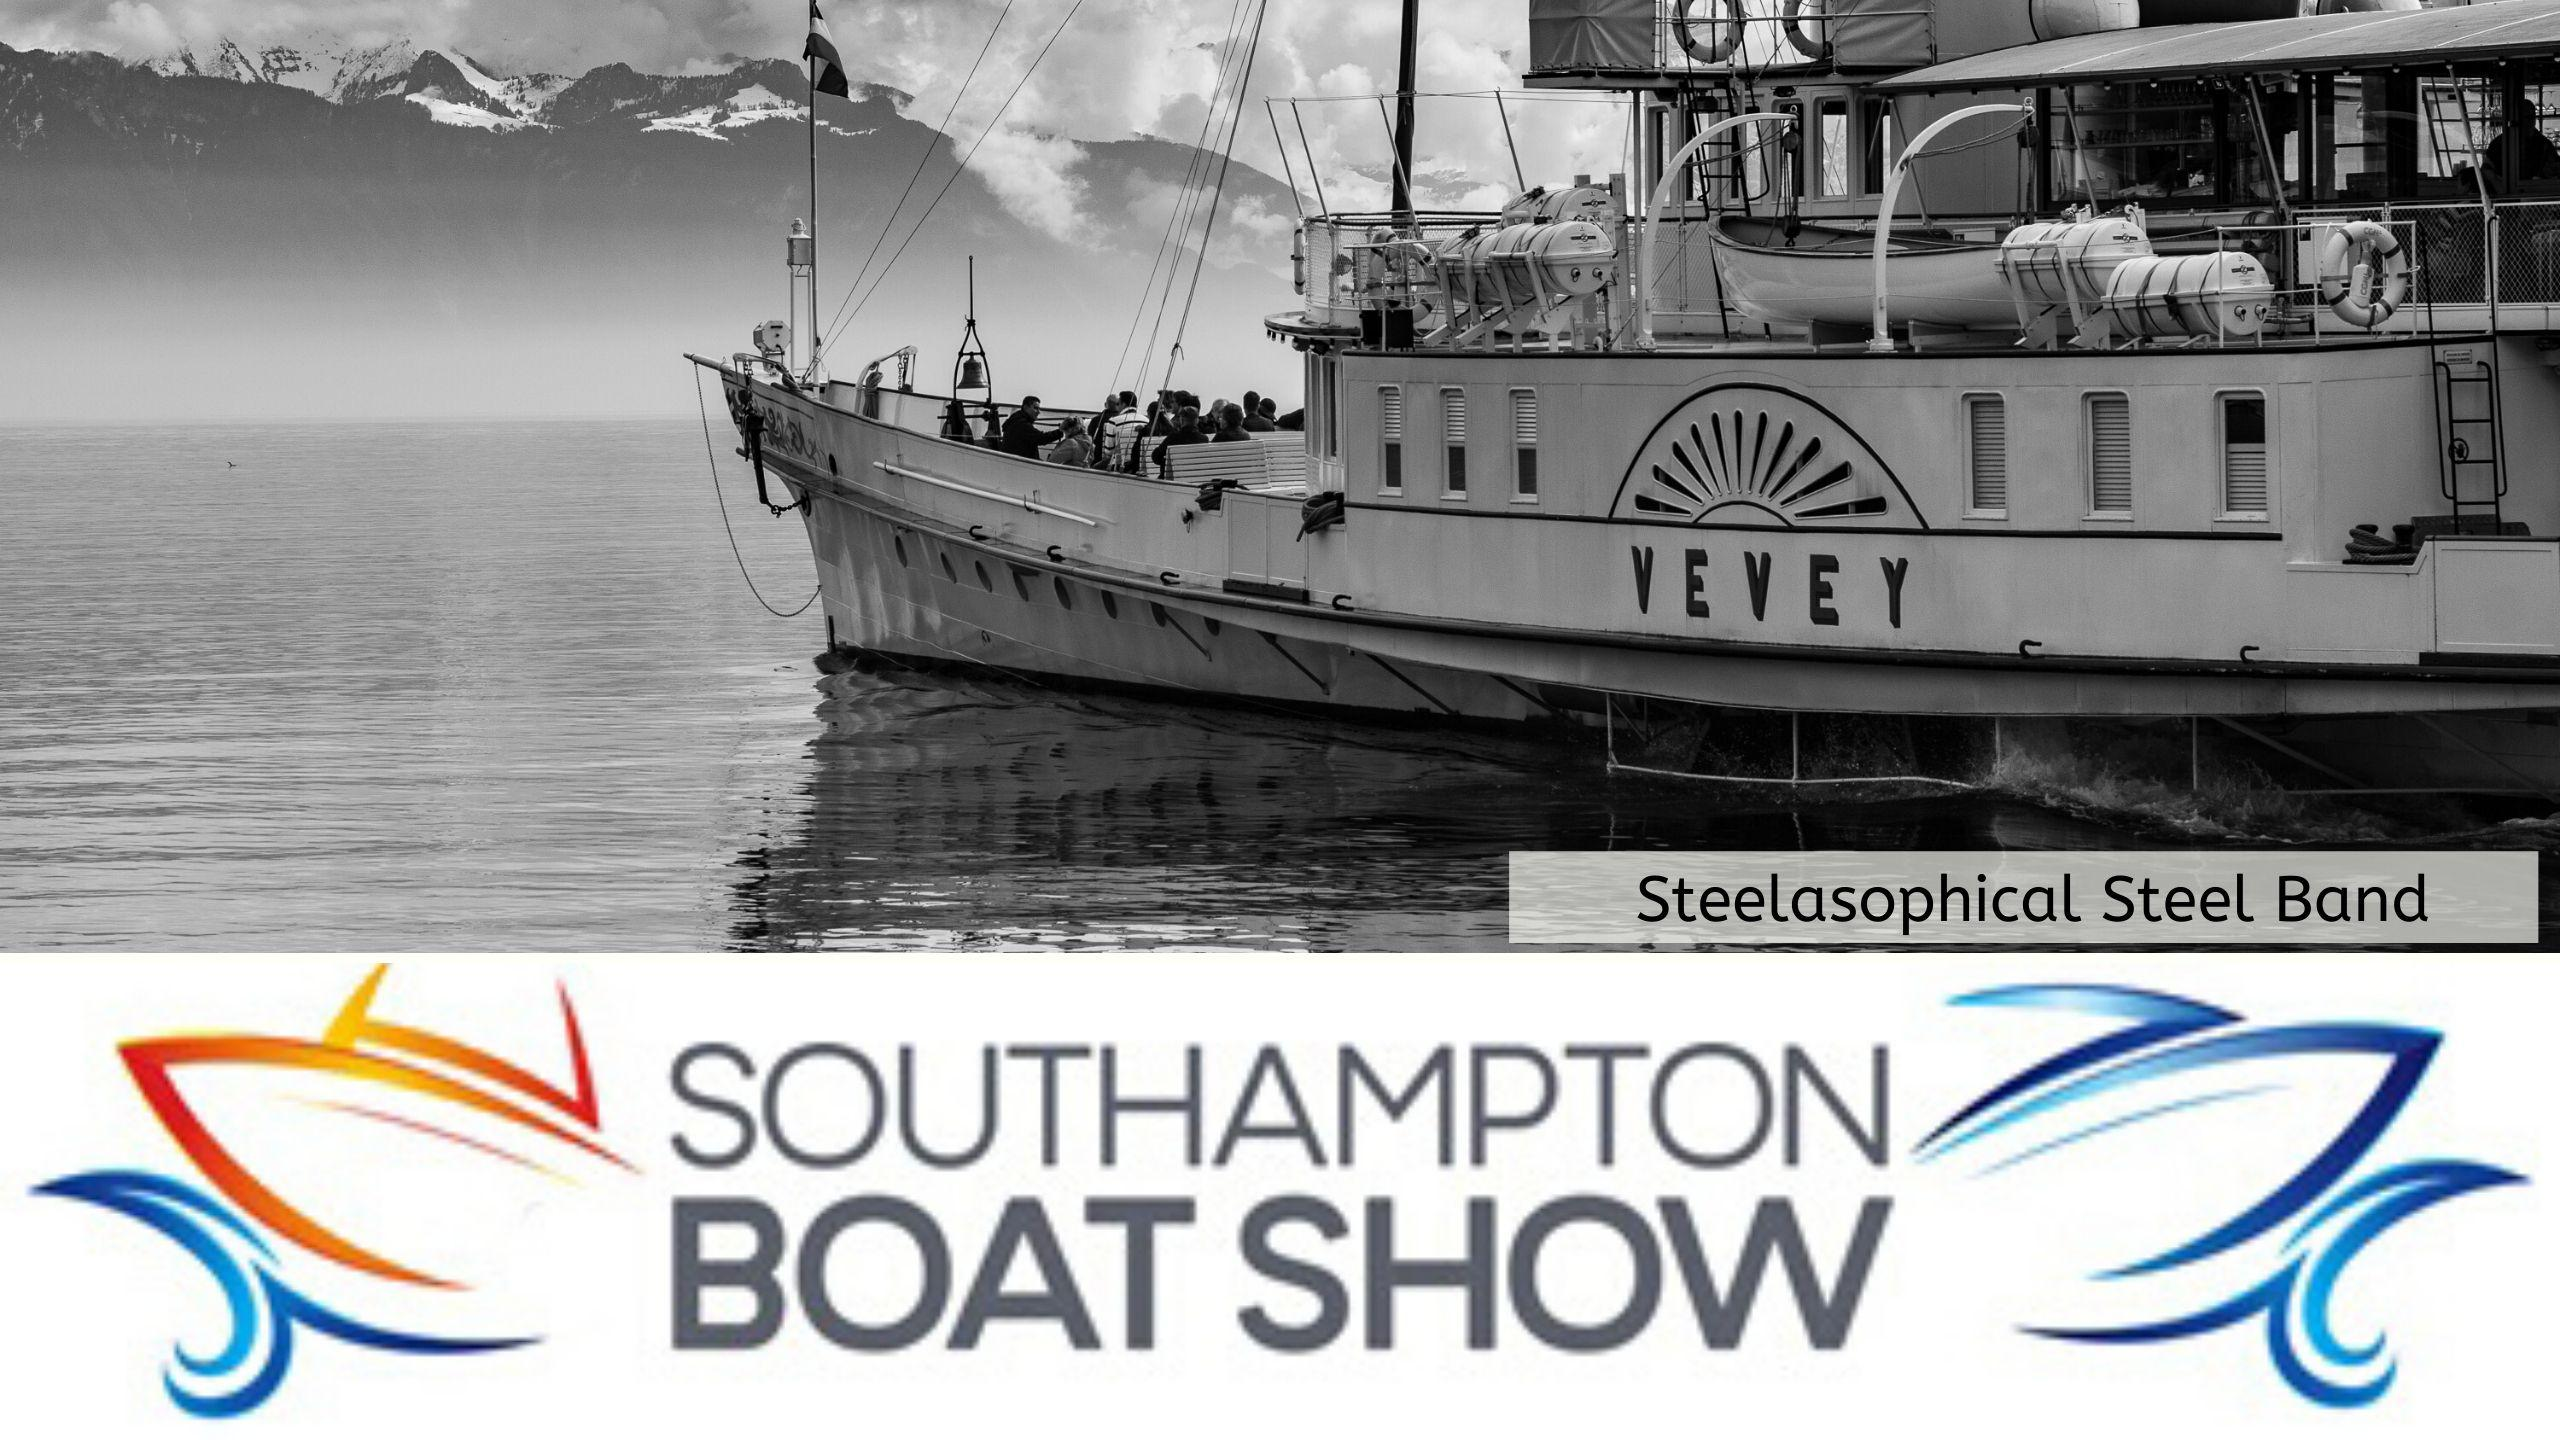 d00 Steelasophical Steel Band Soton Southampton Boat Show YachtMarket Yacht Market